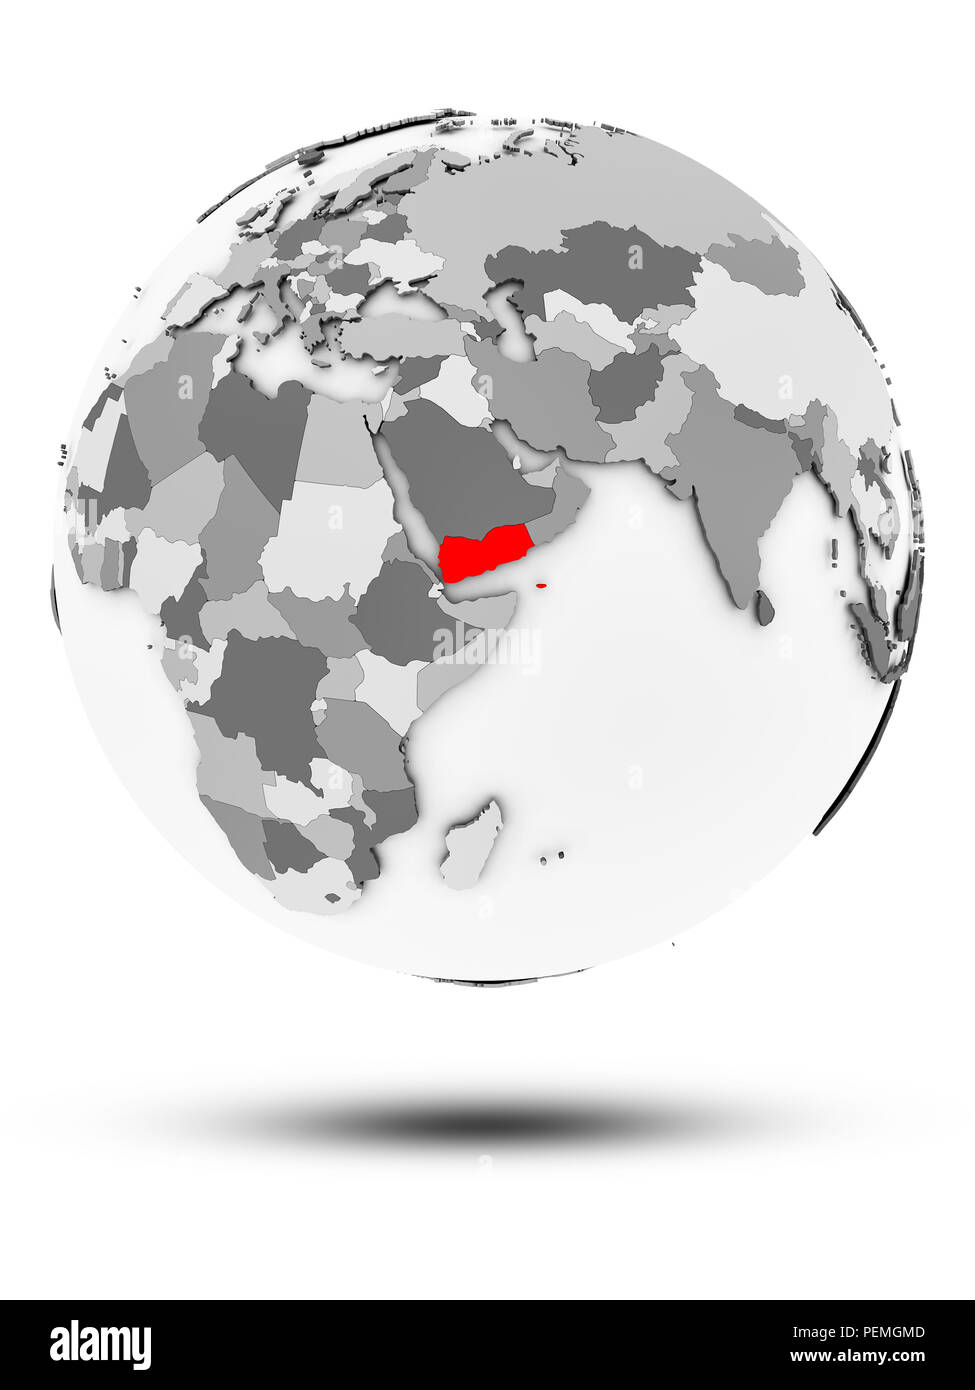 Yemen on simple gray globe with shadow isolated on white background. 3D illustration. - Stock Image